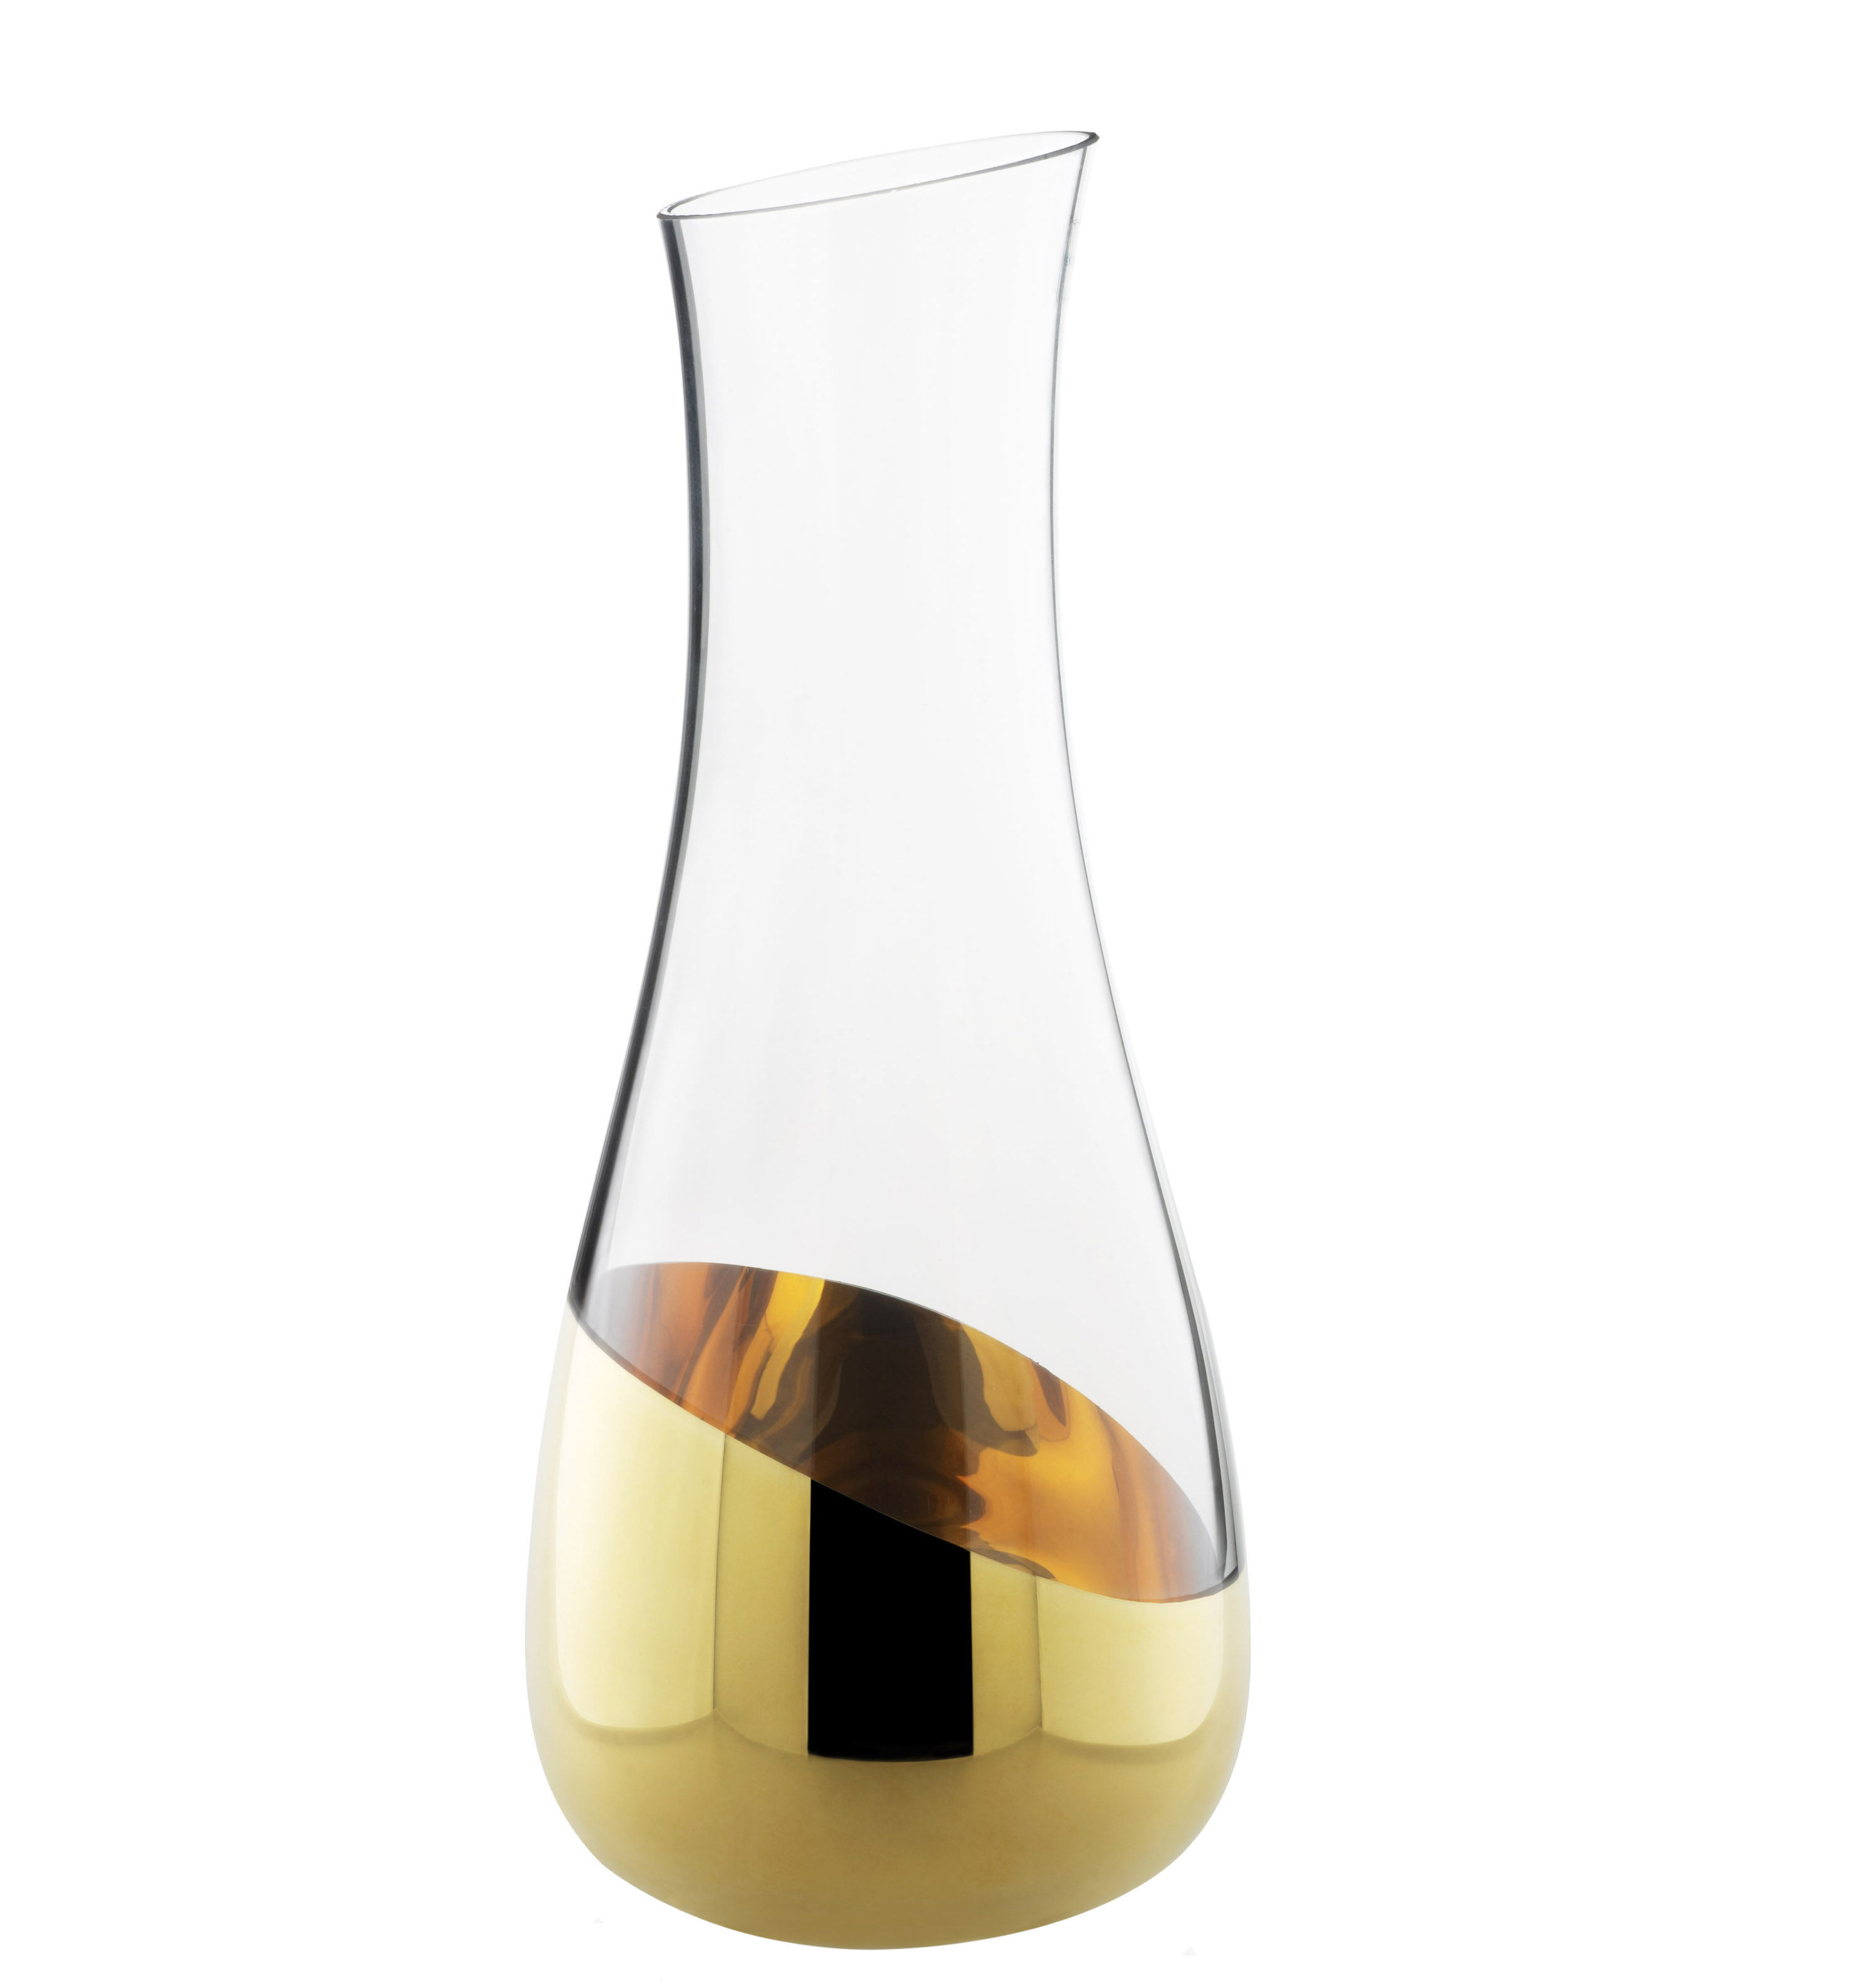 Tableware - Water Carafes & Wine Decanters - Midas Carafe - Carafe with gold lower H 30 cm by Skitsch - Clear & gold - Gold, Mouth blown glass